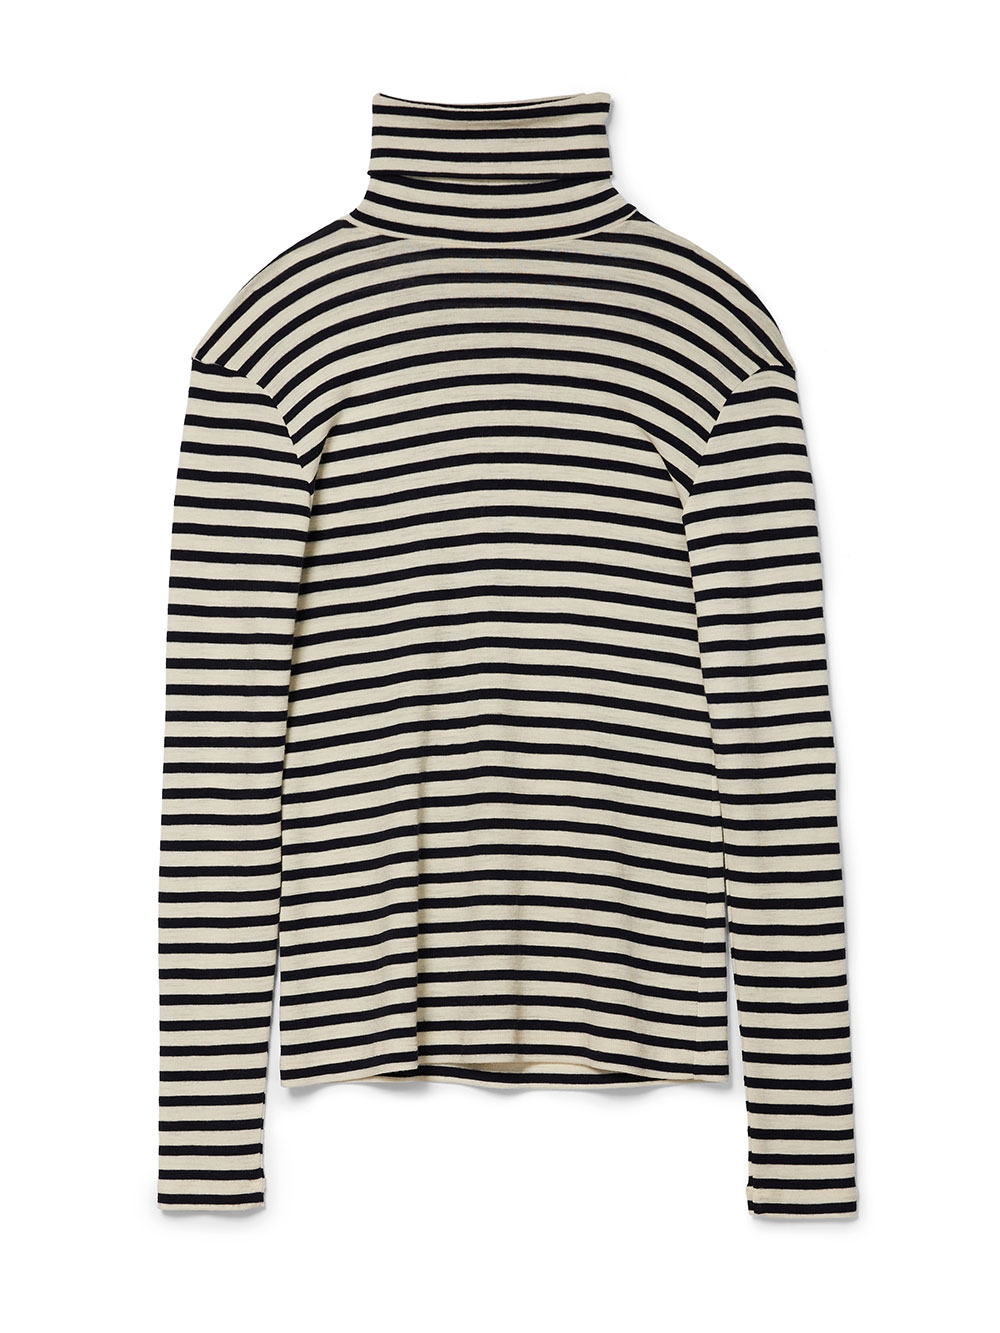 TOP STRIPE ROLLERNECK